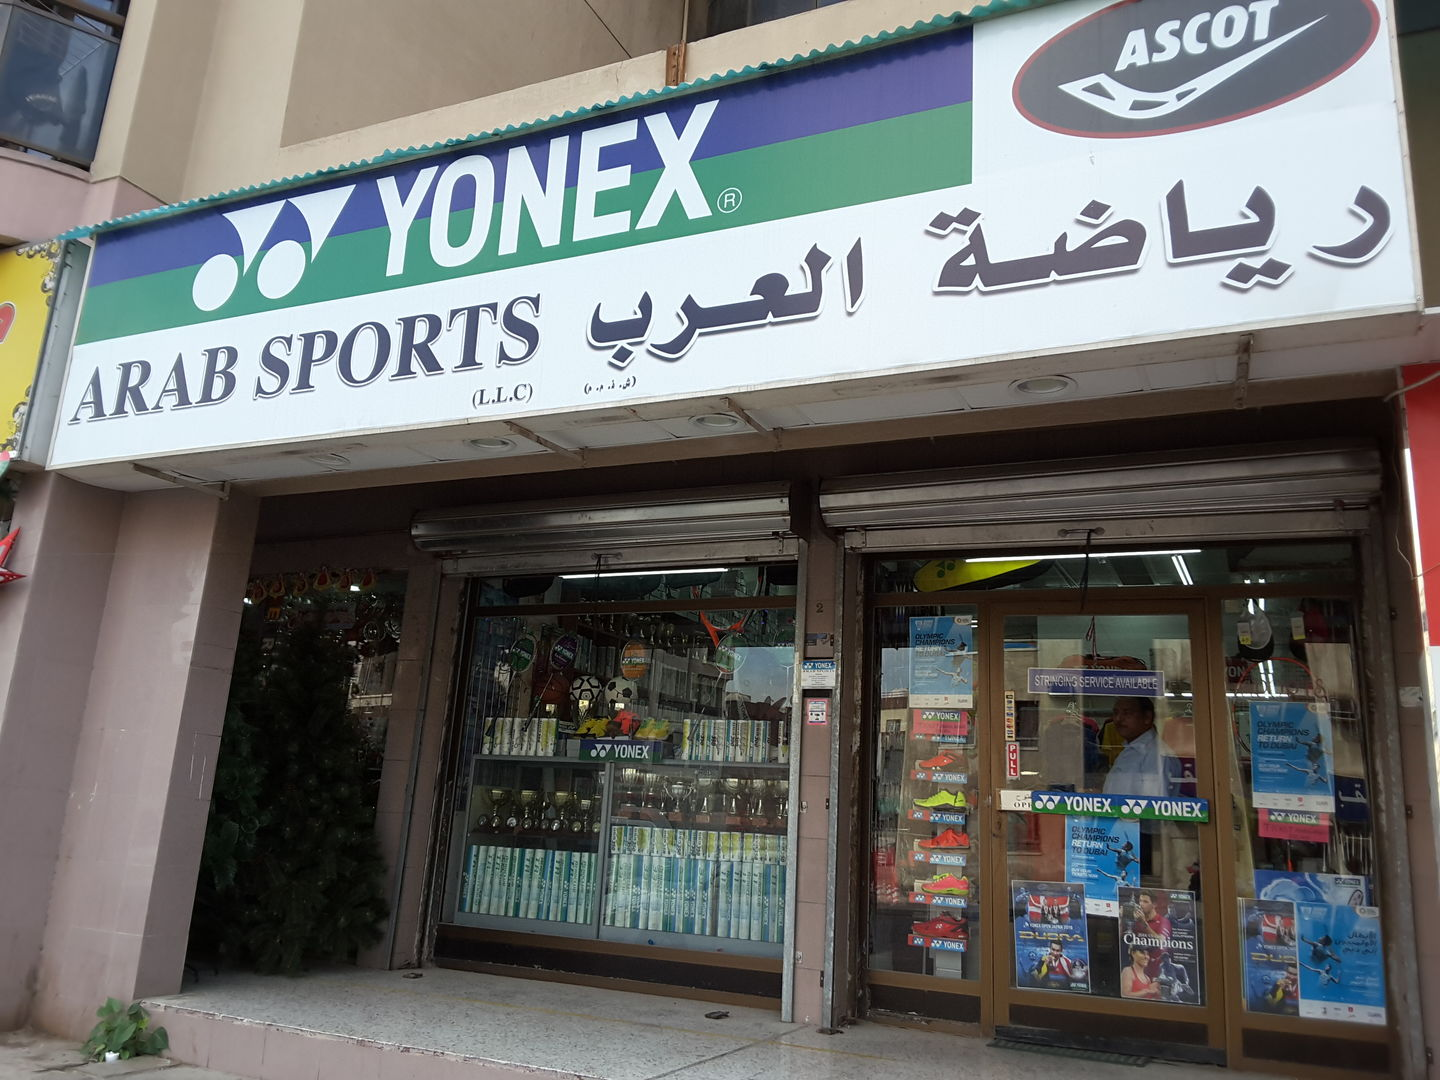 HiDubai-business-arab-sports-yonex-shopping-sporting-goods-equipment-al-karama-dubai-2